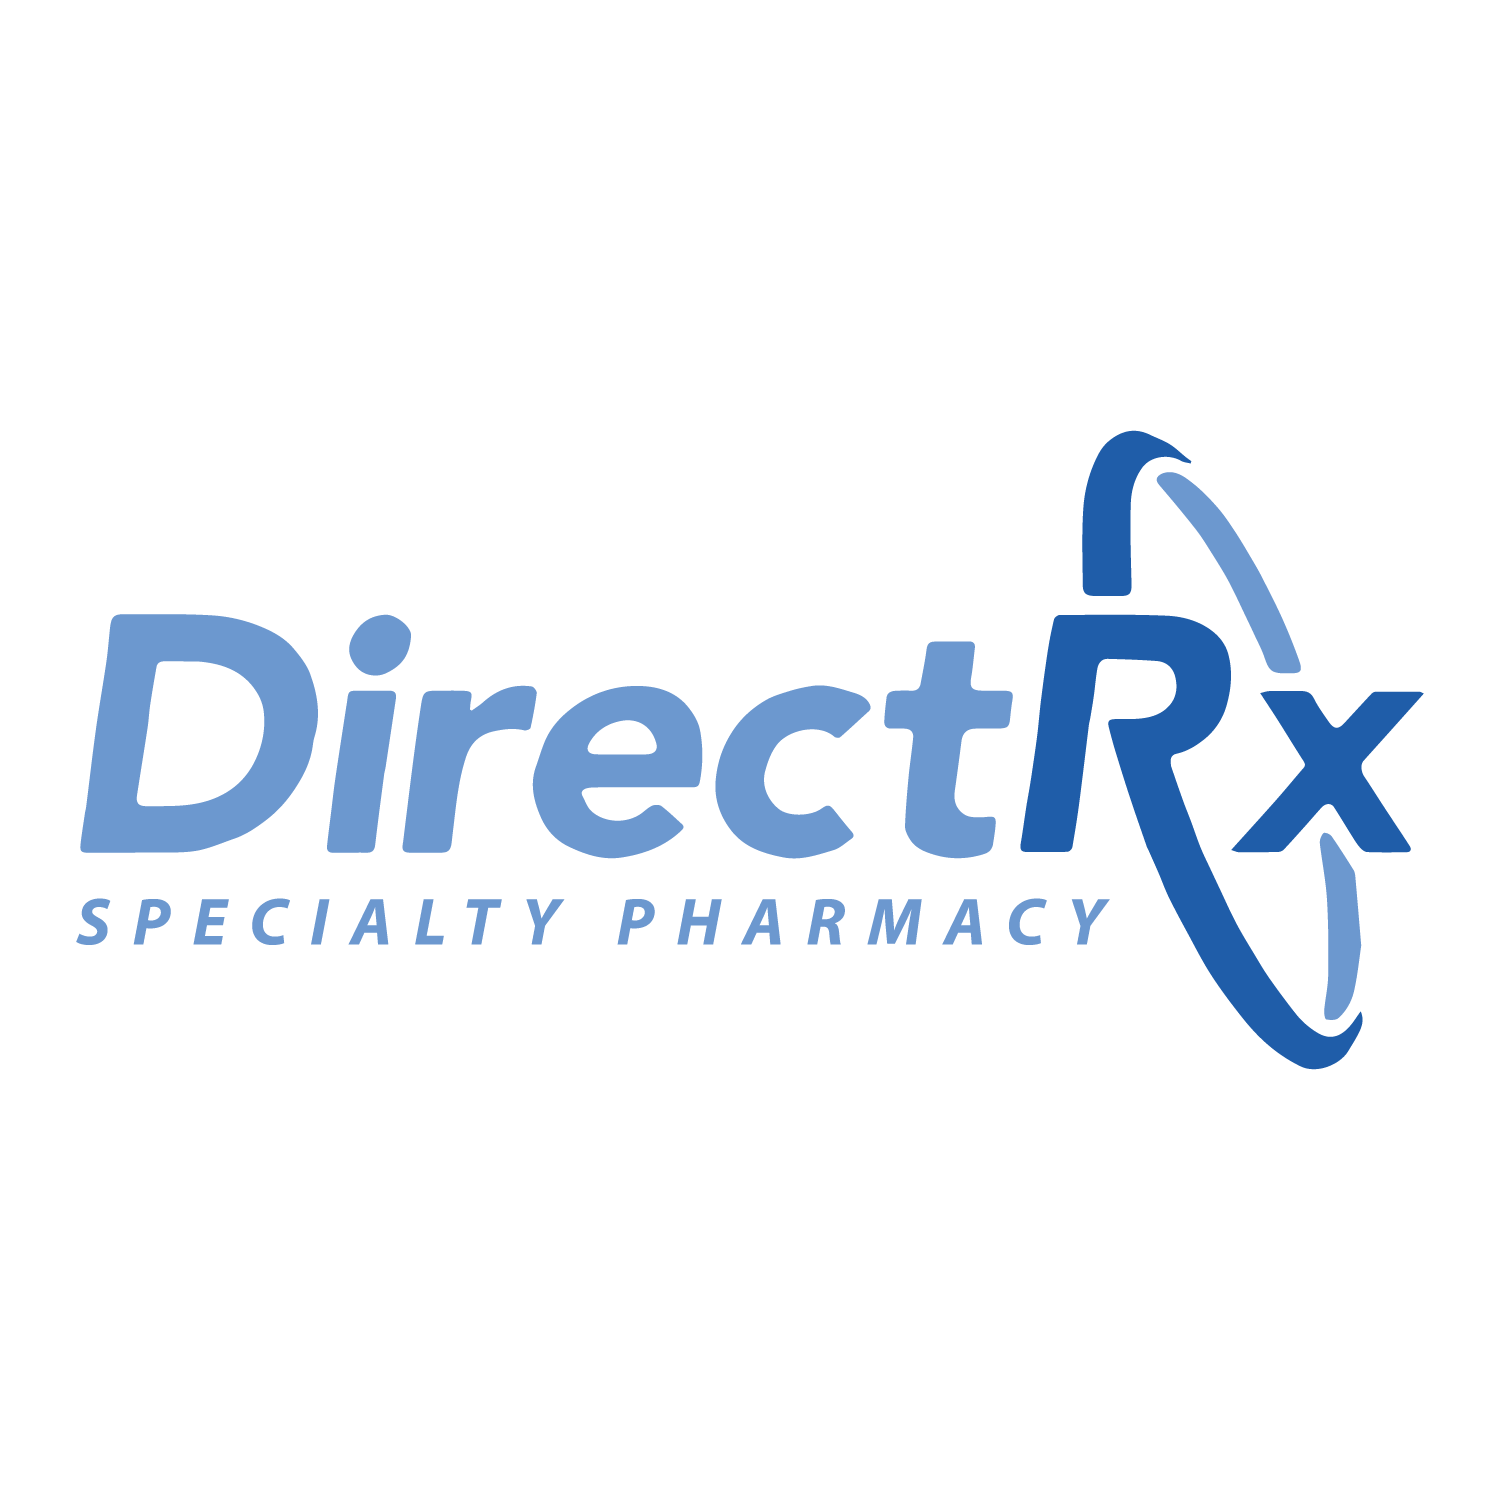 Direct RX